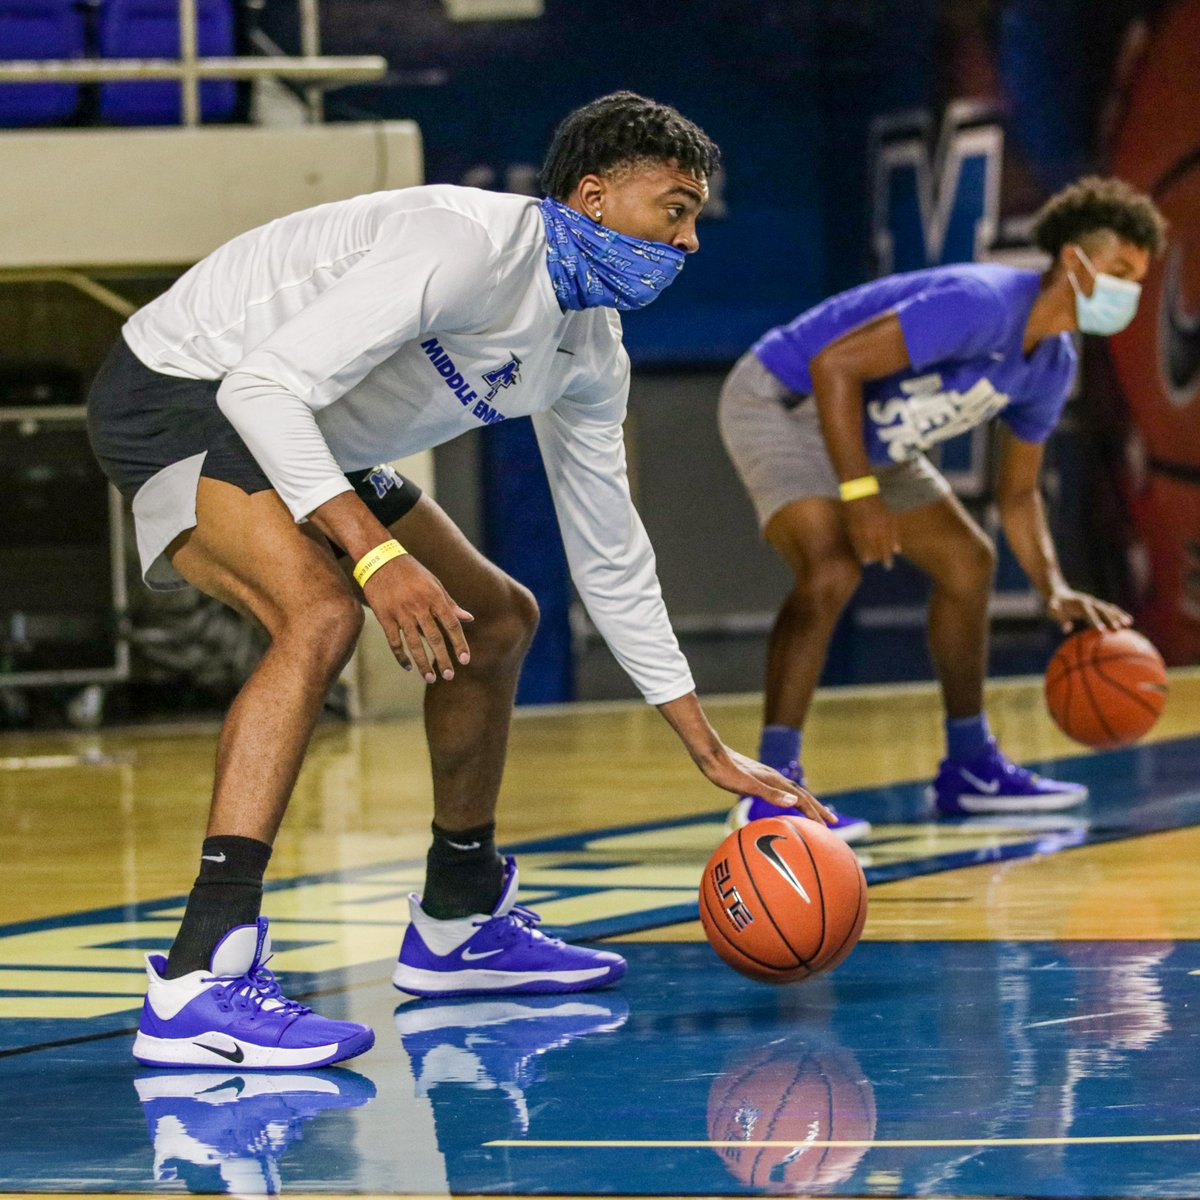 Mastering the craft 🏀  #BlueRaiders 🔵⚪️⚡️ https://t.co/Of0YOke91p